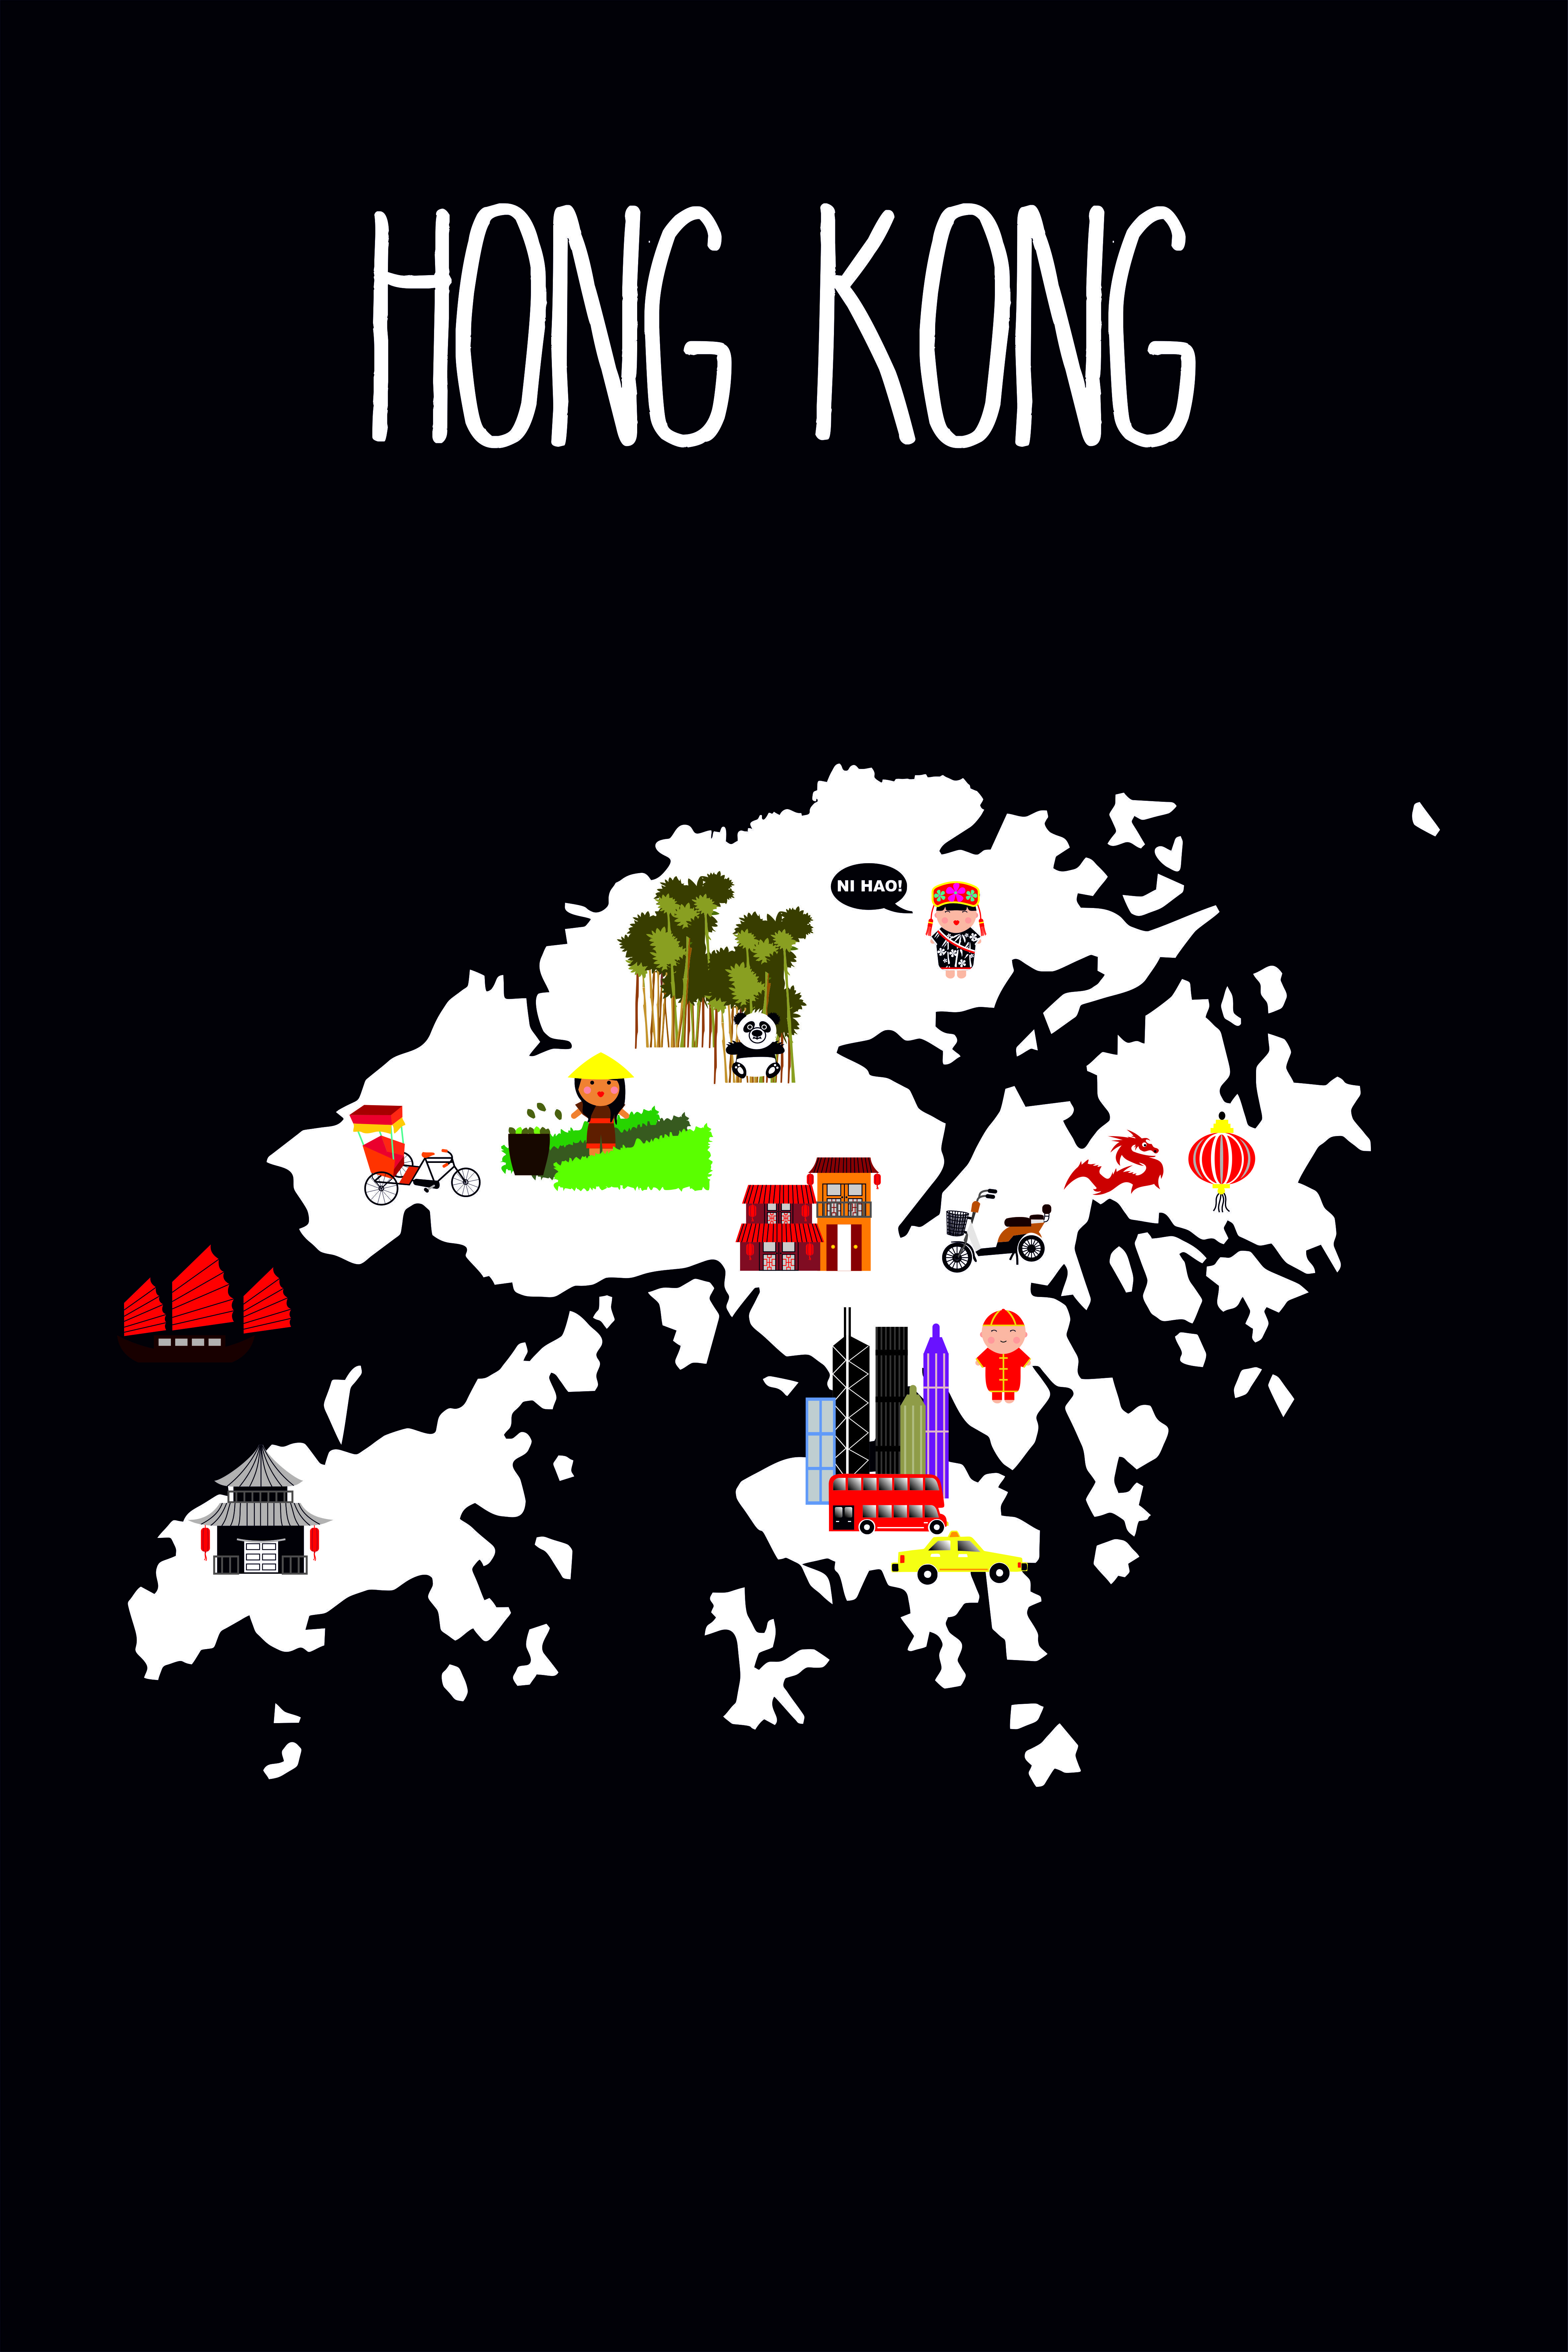 Hong kong poster hongkong map maps china world worldmap hong kong poster hongkong map maps china world worldmap gumiabroncs Choice Image